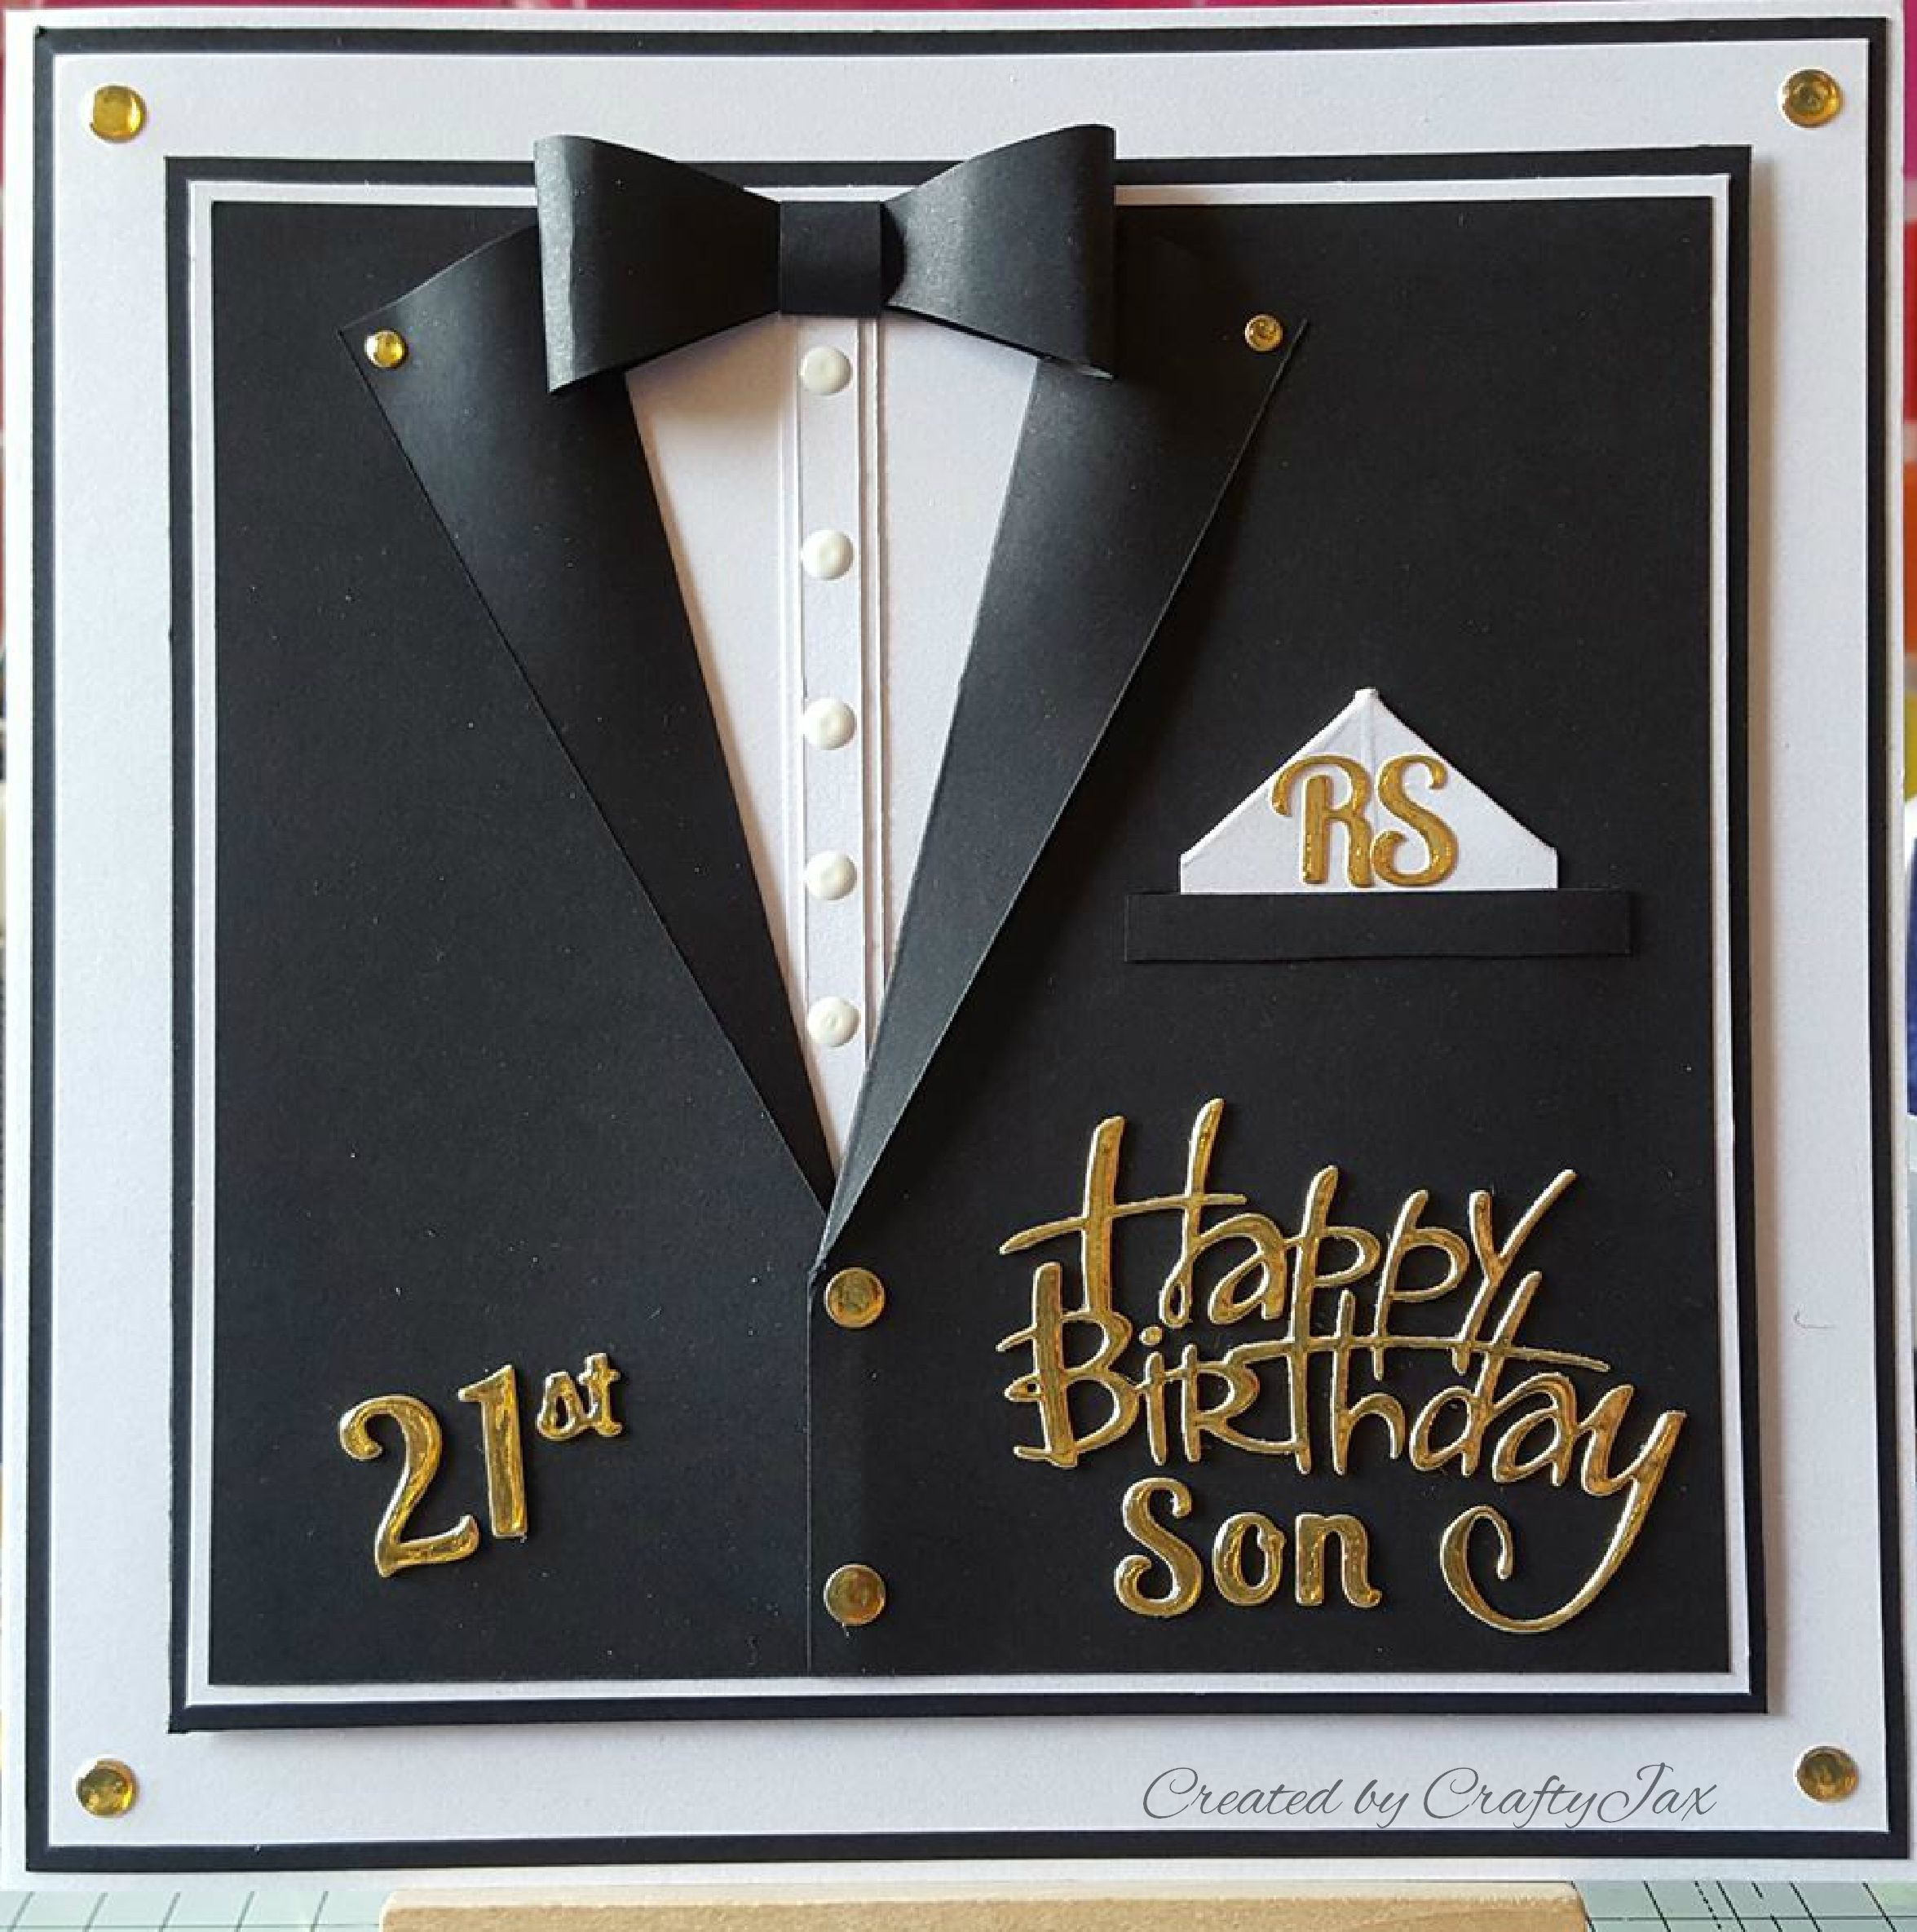 007 inspired male 21st birthday card